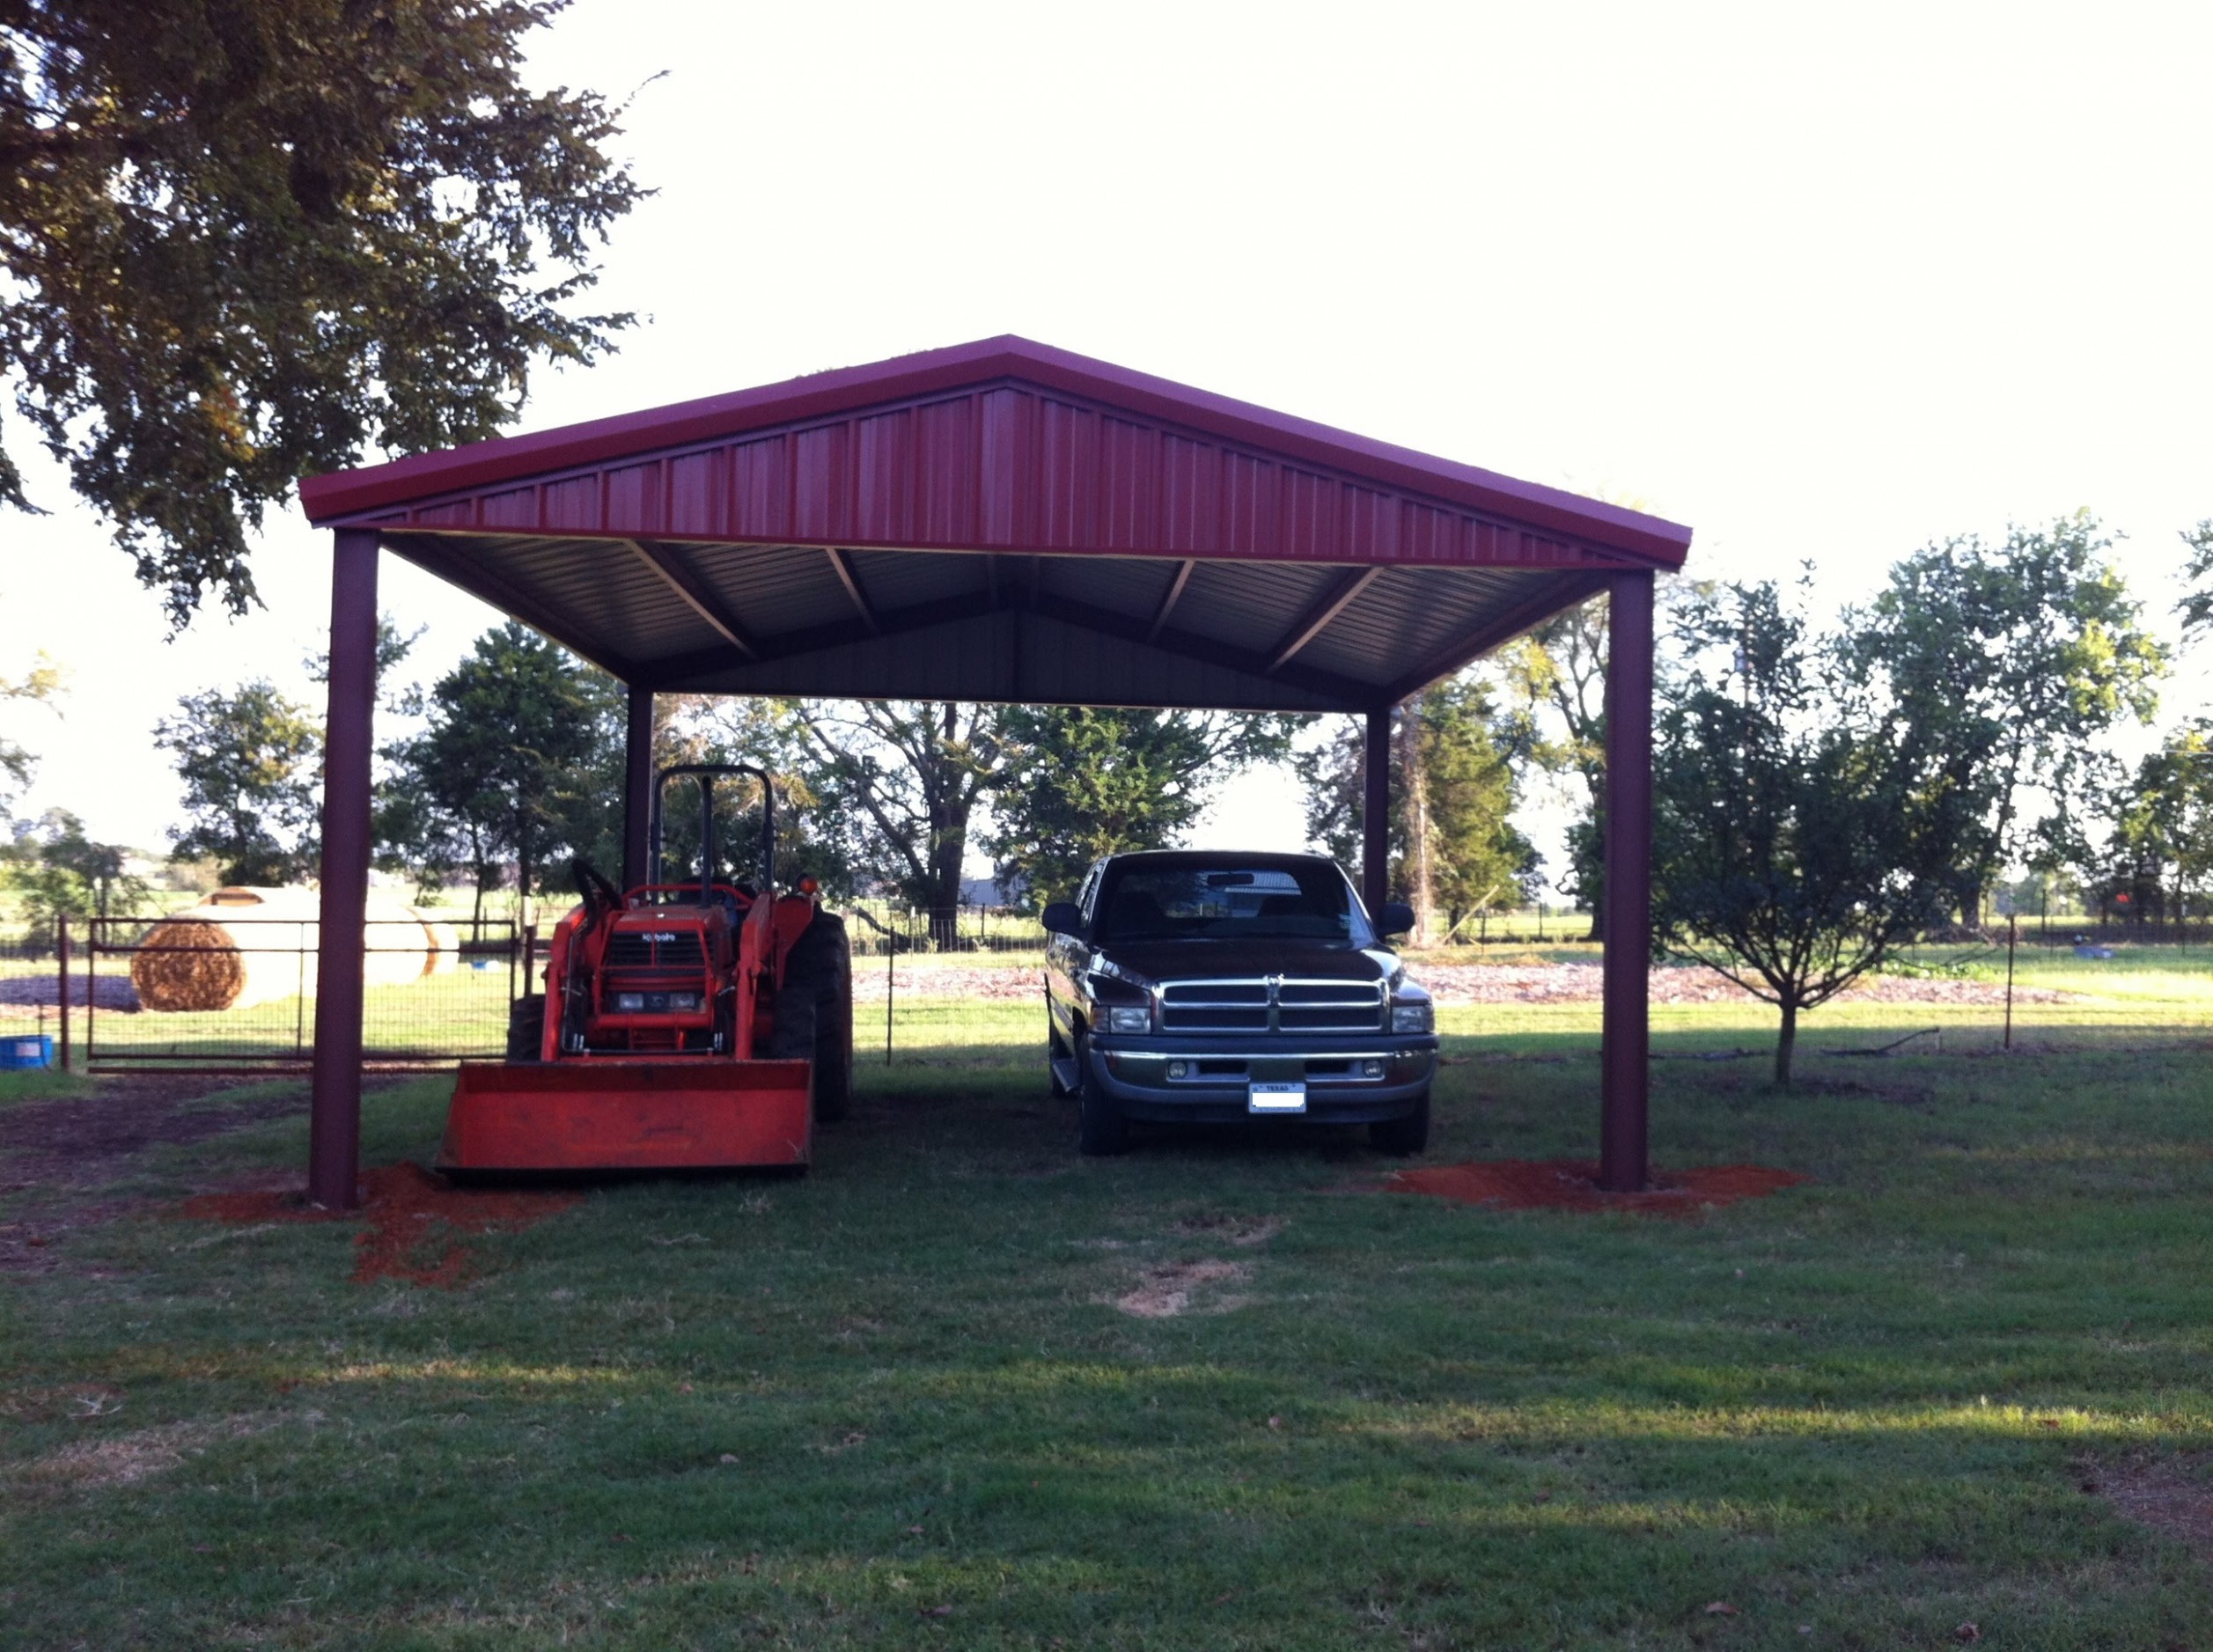 1517738799-how-to-build-an-all-metal-carport-from-start-to-finish-youtube-small-metal-carports.jpg